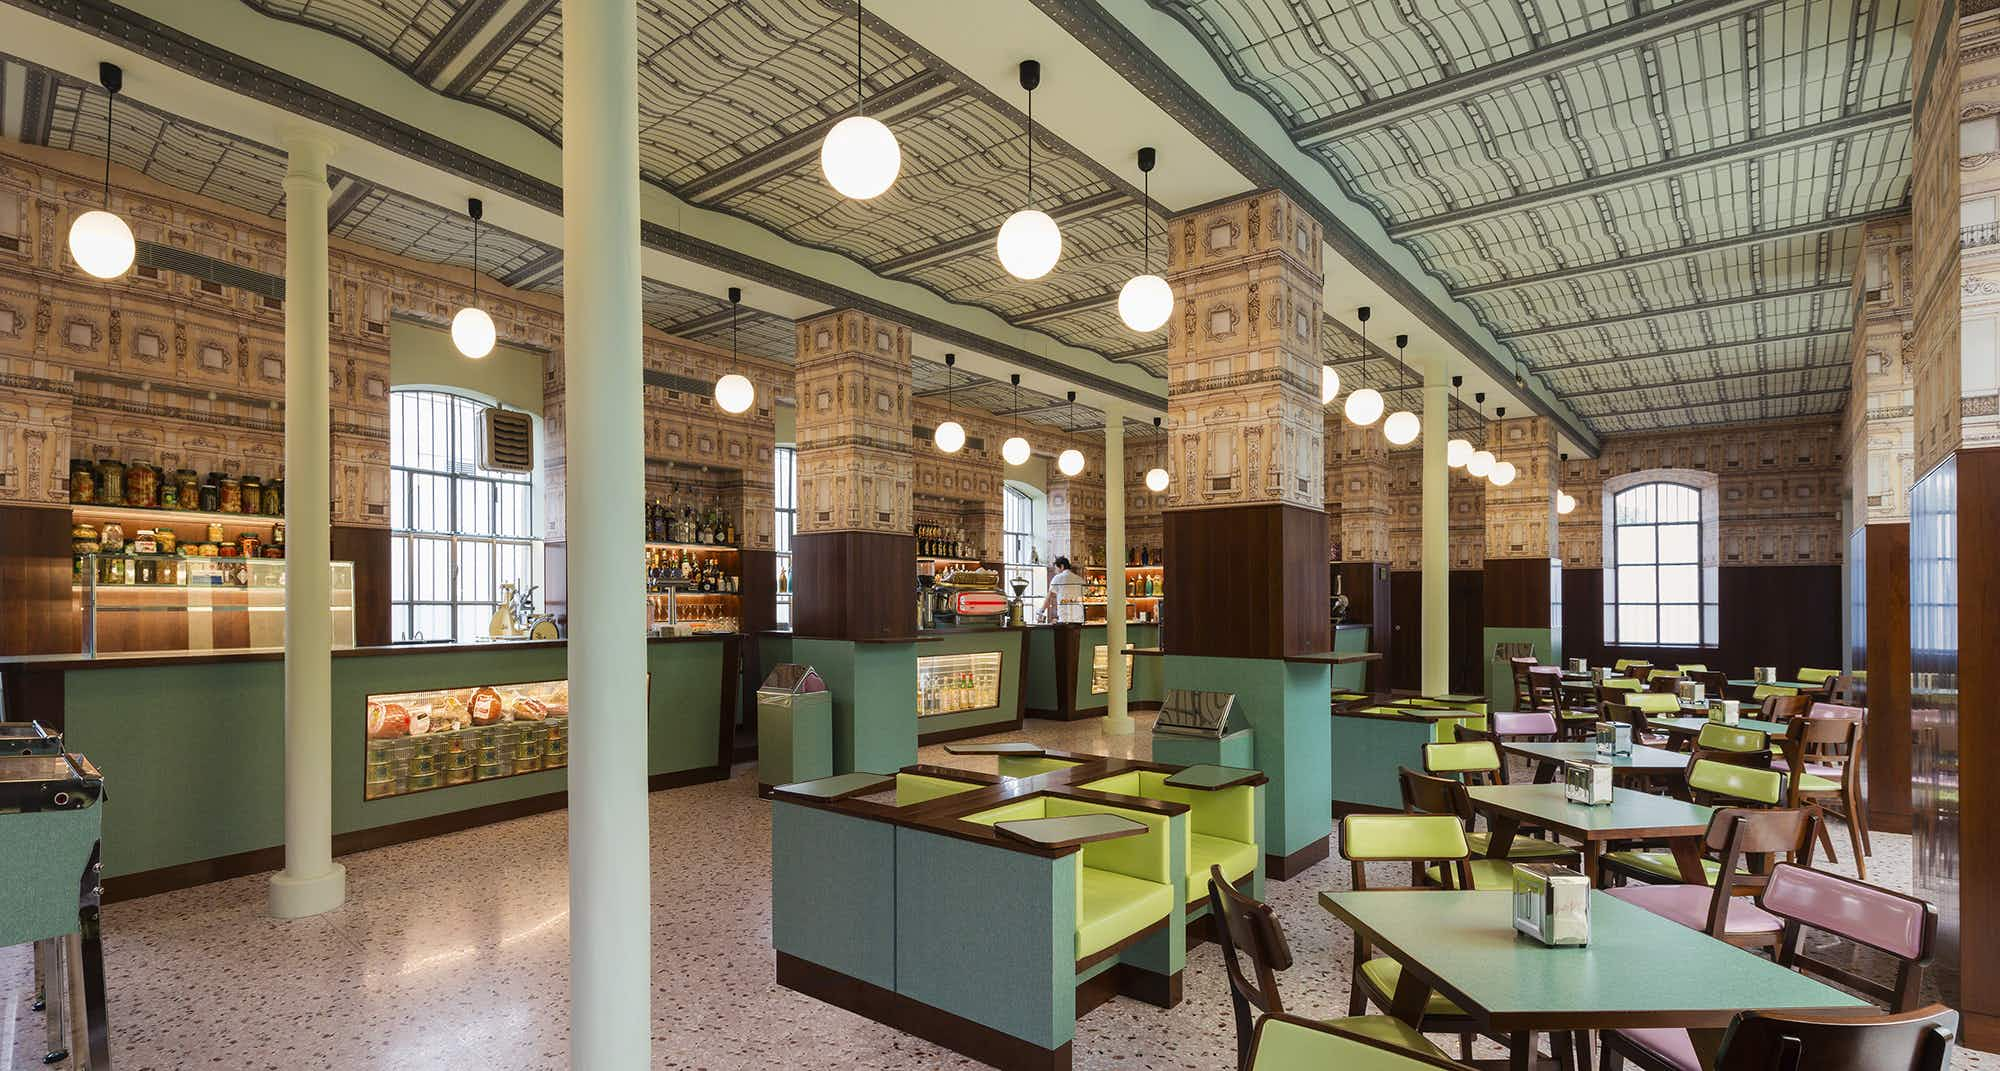 Wes Anderson has designed a cafe in Milan, and it is everything you expect